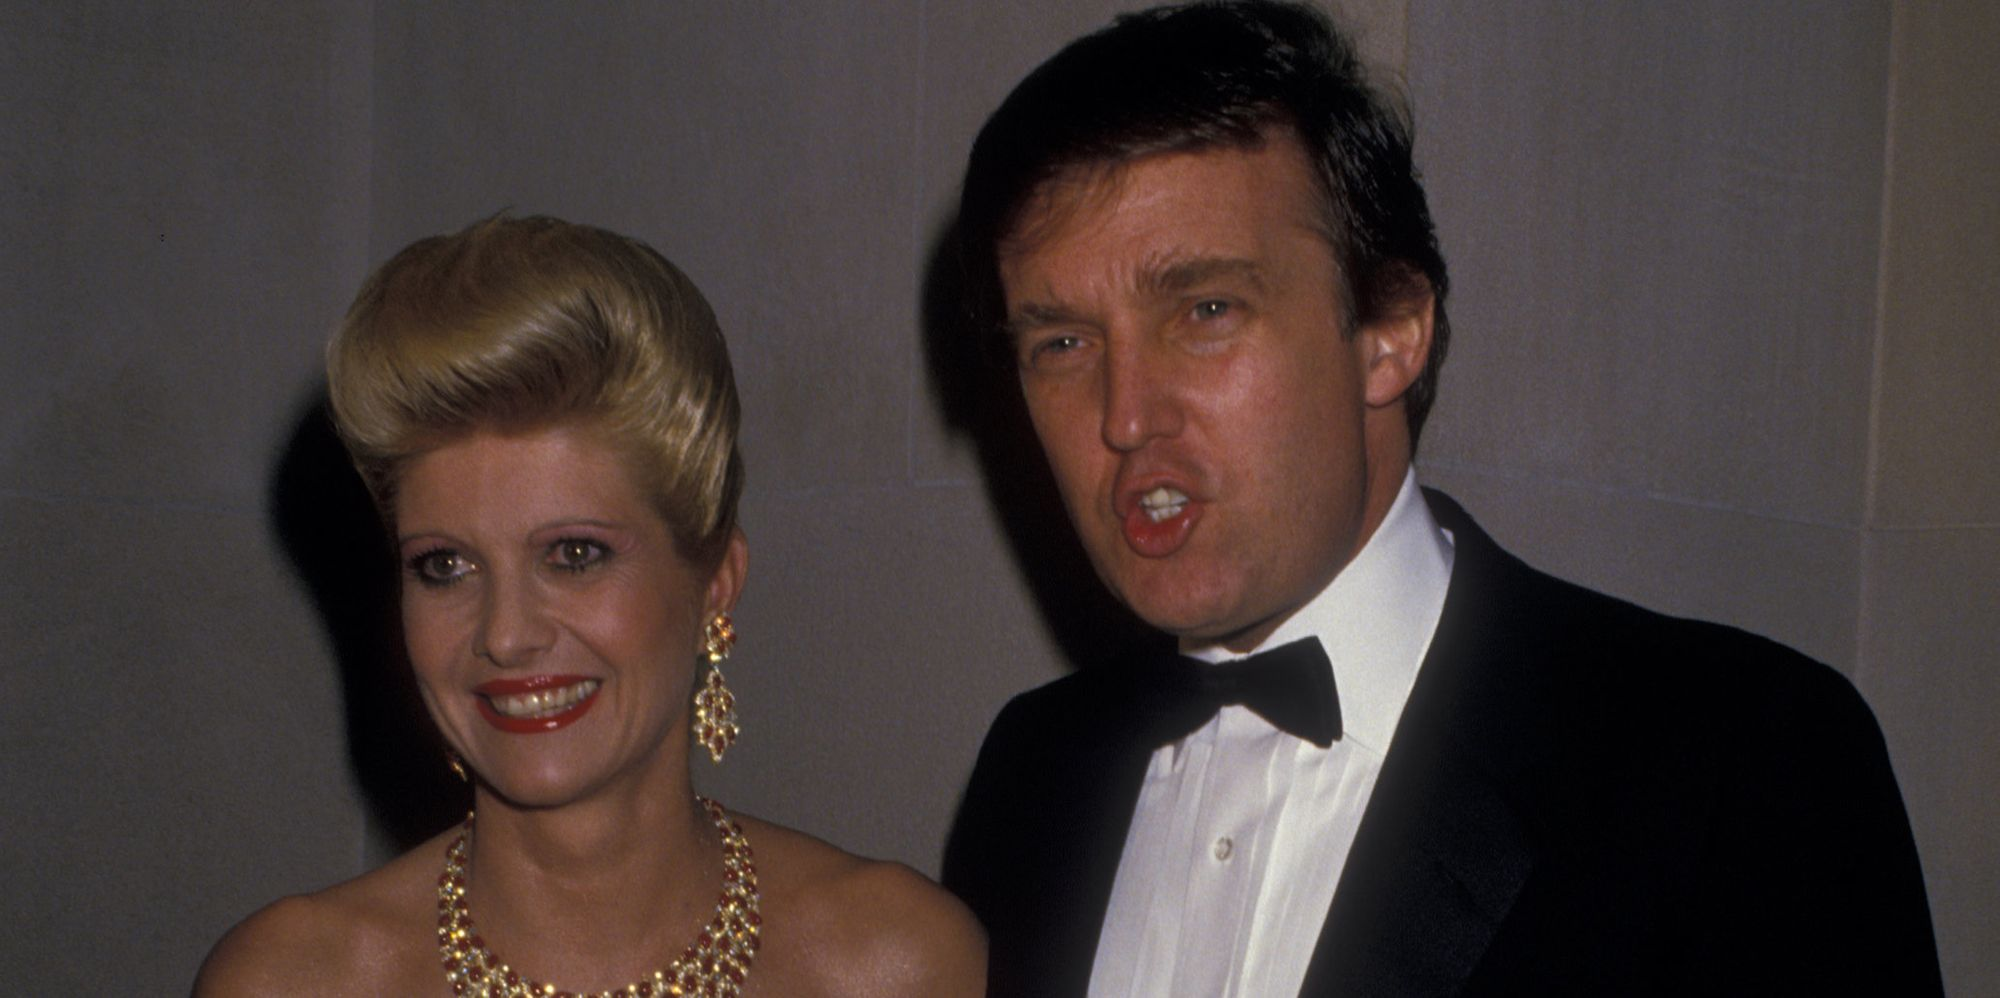 Donald Trump's Ex-Wife Ivana Could Be Returning To The 'Celebrity Big Brother' House